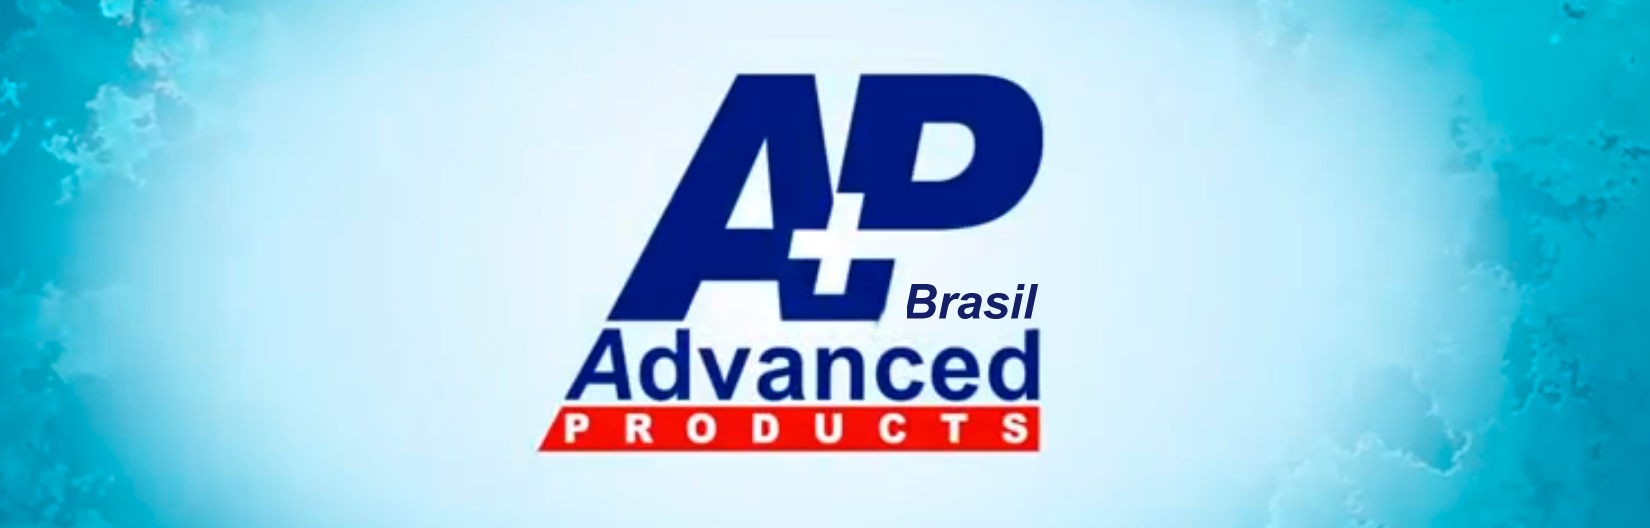 ADVANCED PRODUCTS BRASIL